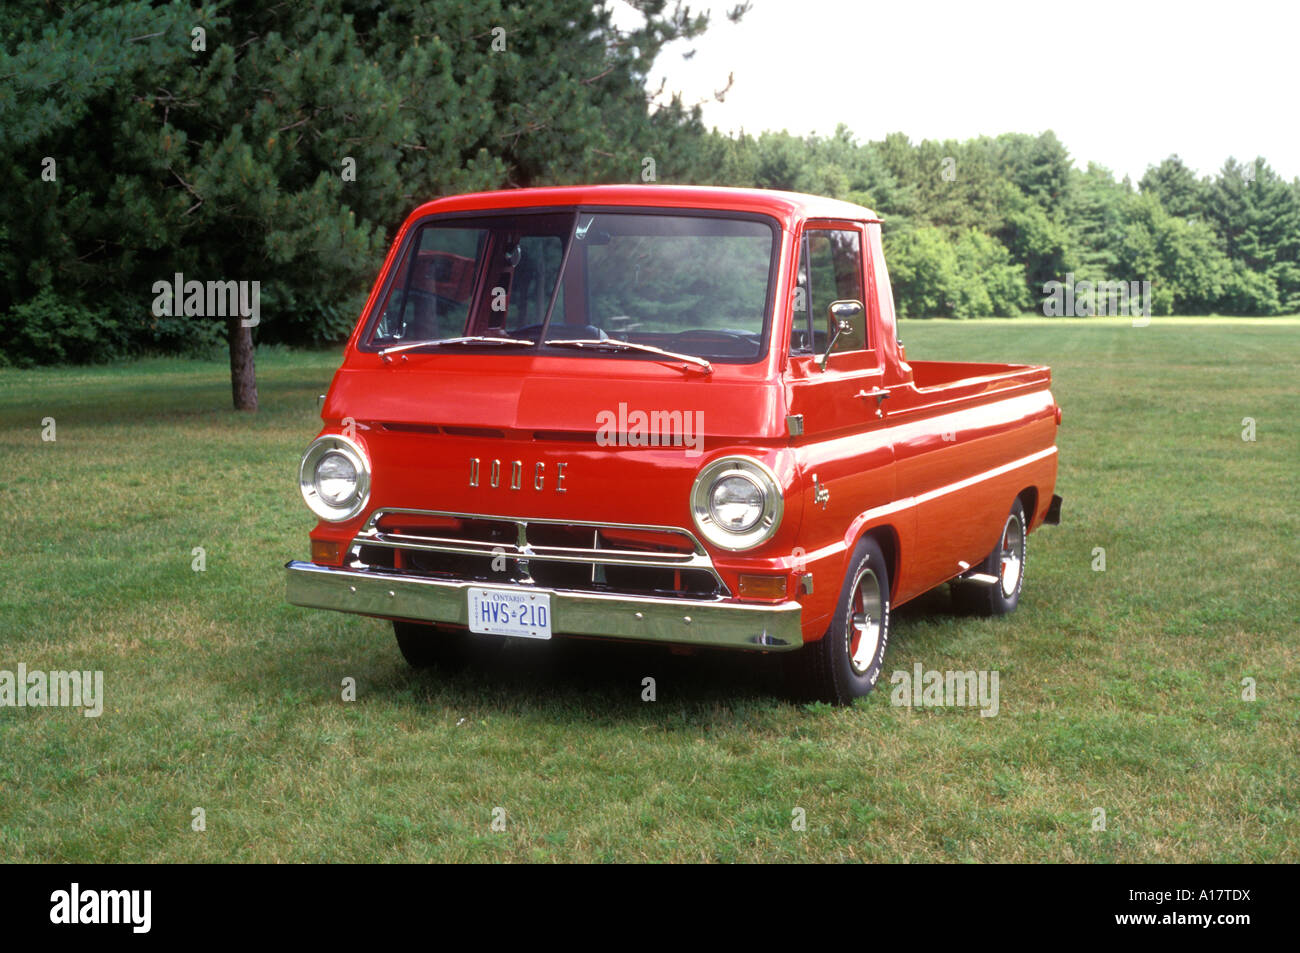 1966 dodge a 100 compact pickup truck on grass stock photo royalty free image 10172005 alamy. Black Bedroom Furniture Sets. Home Design Ideas